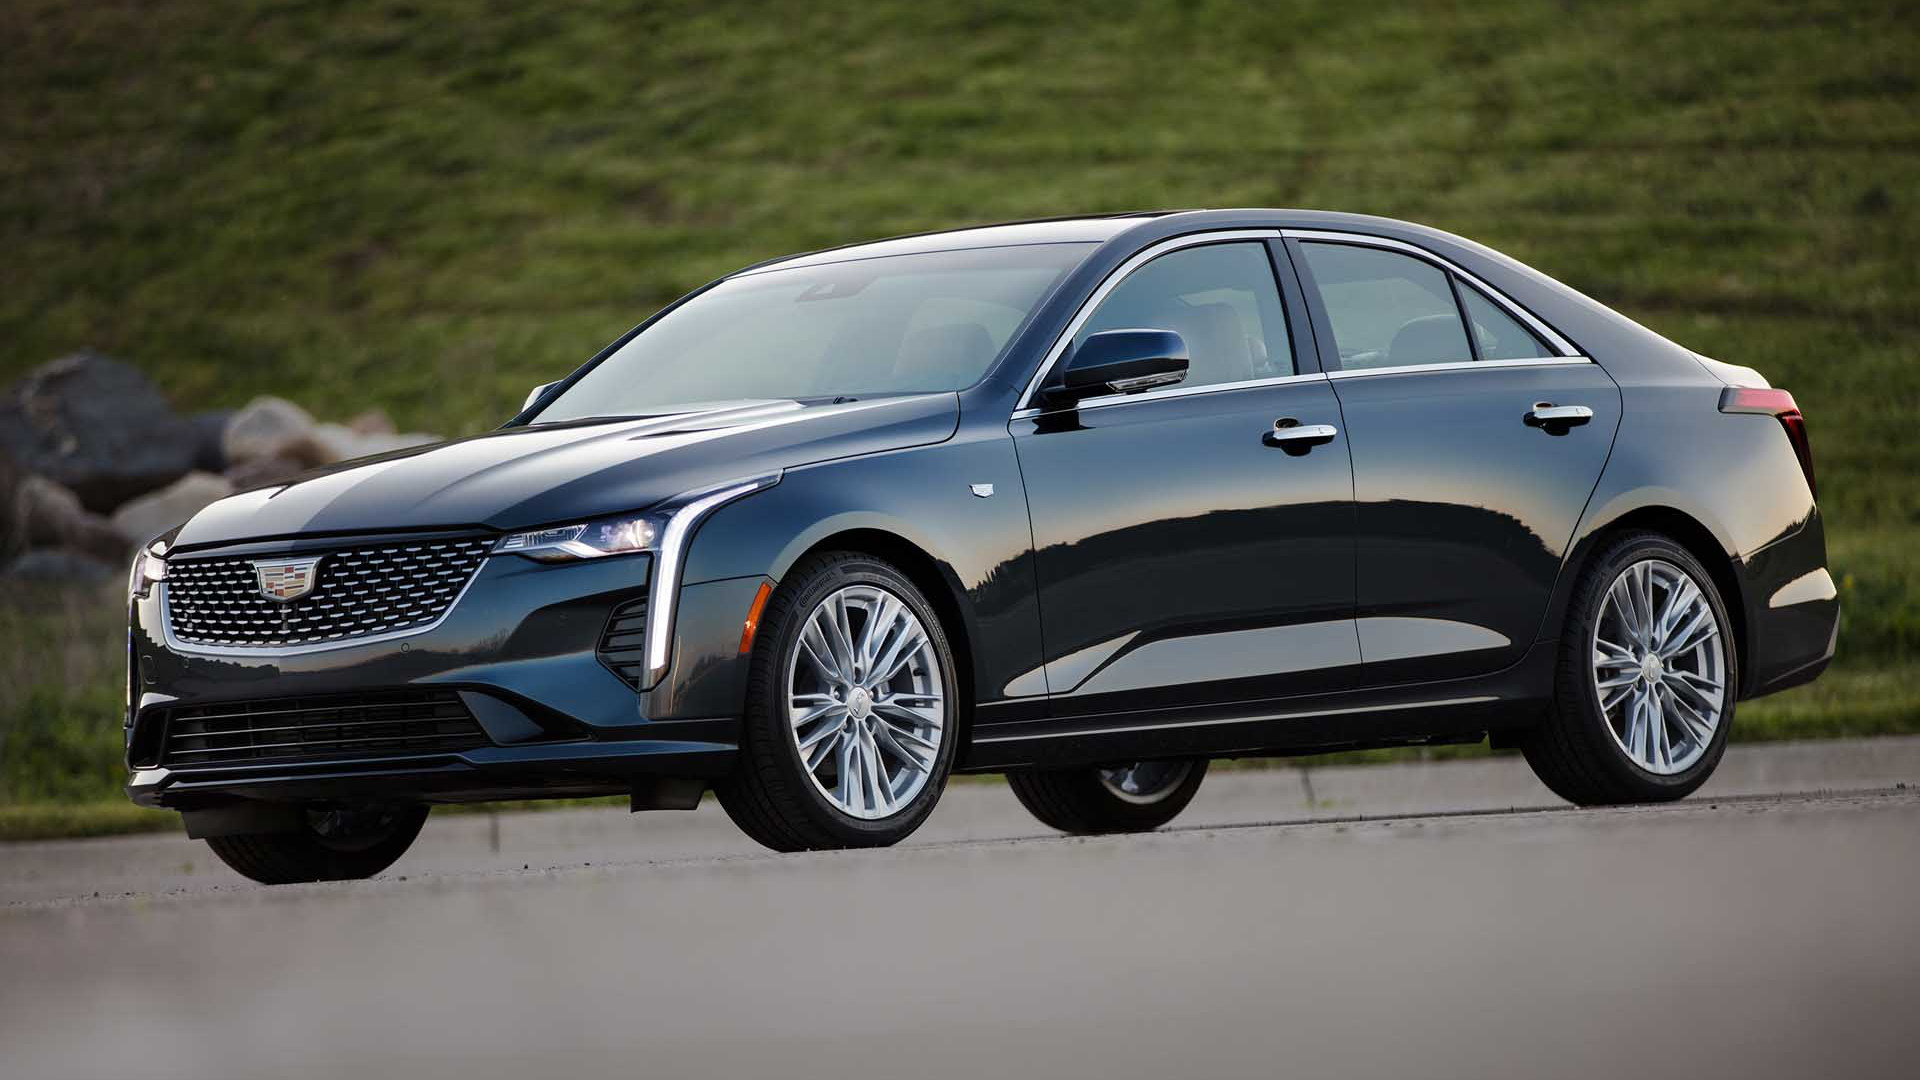 2020 cadillac ct4 is here super cruise vseries weird